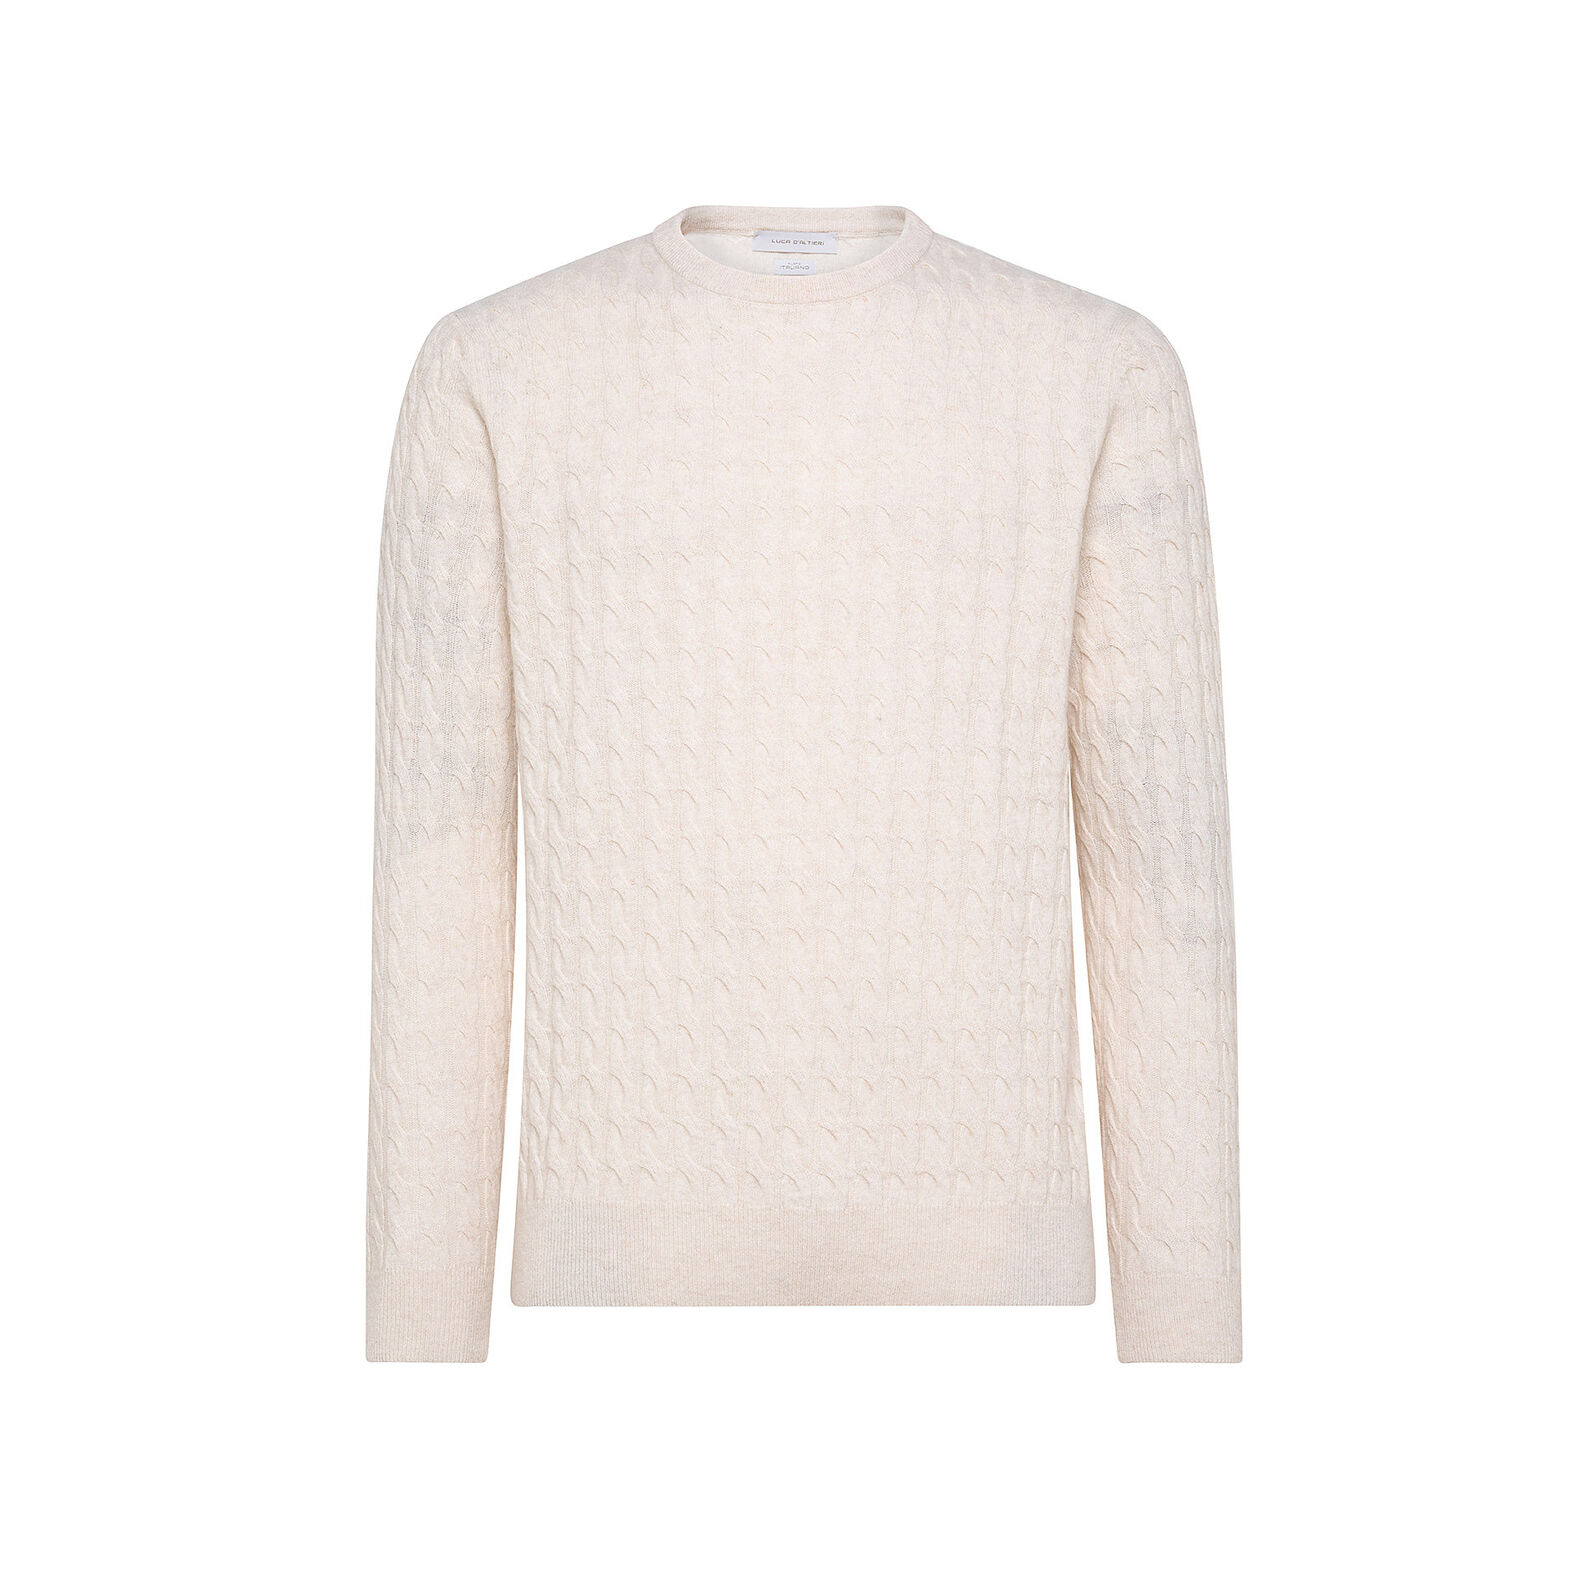 Cable knit pullover in cashmere blend